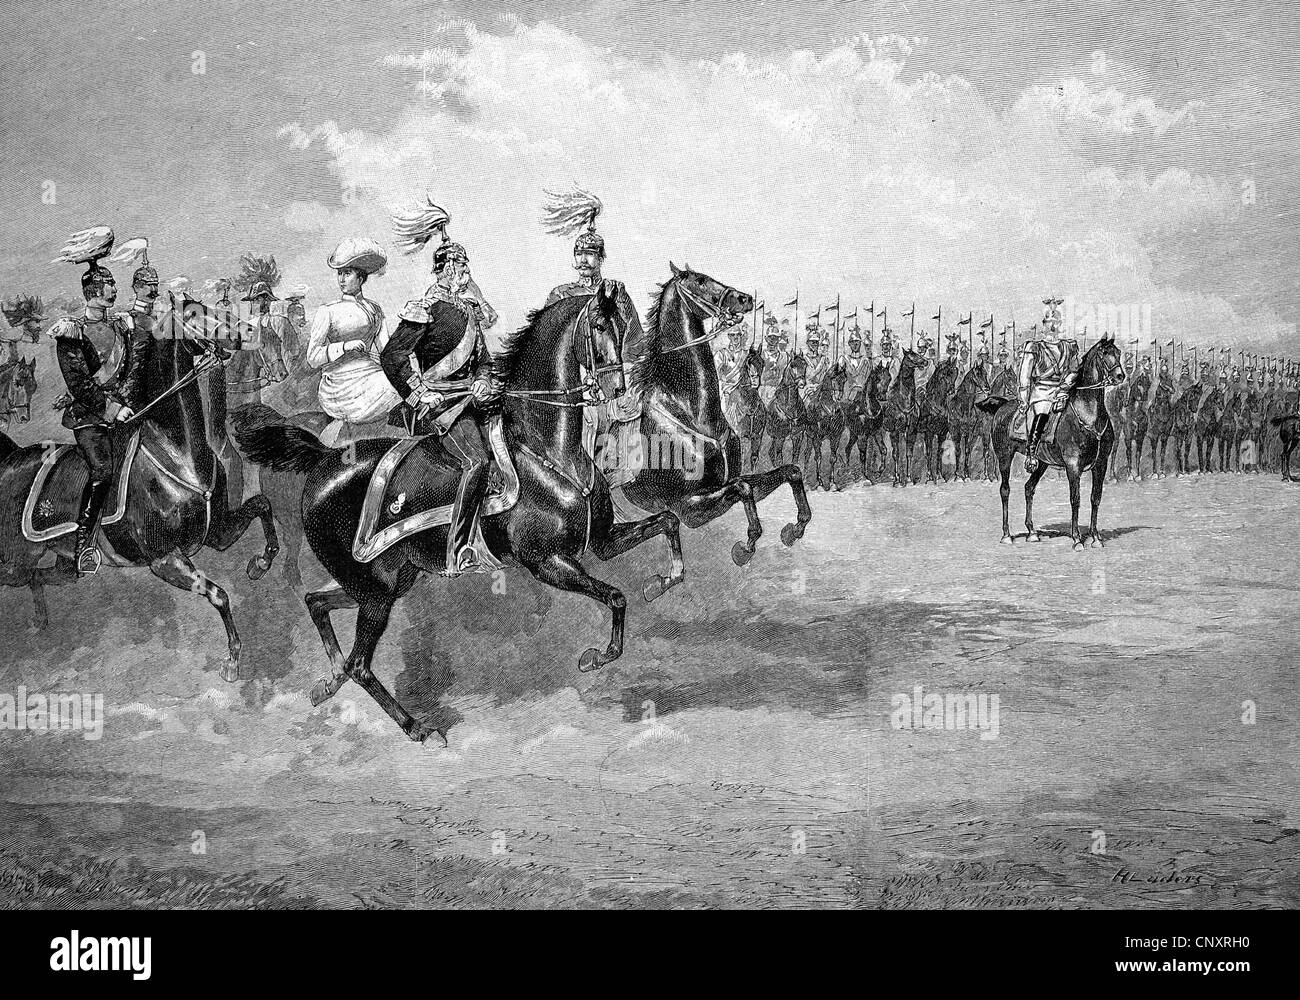 The parade in honor of Emperor Franz Joseph on Tempelhofer Feld field in Berlin, historical engraving, about 1888 - Stock Image